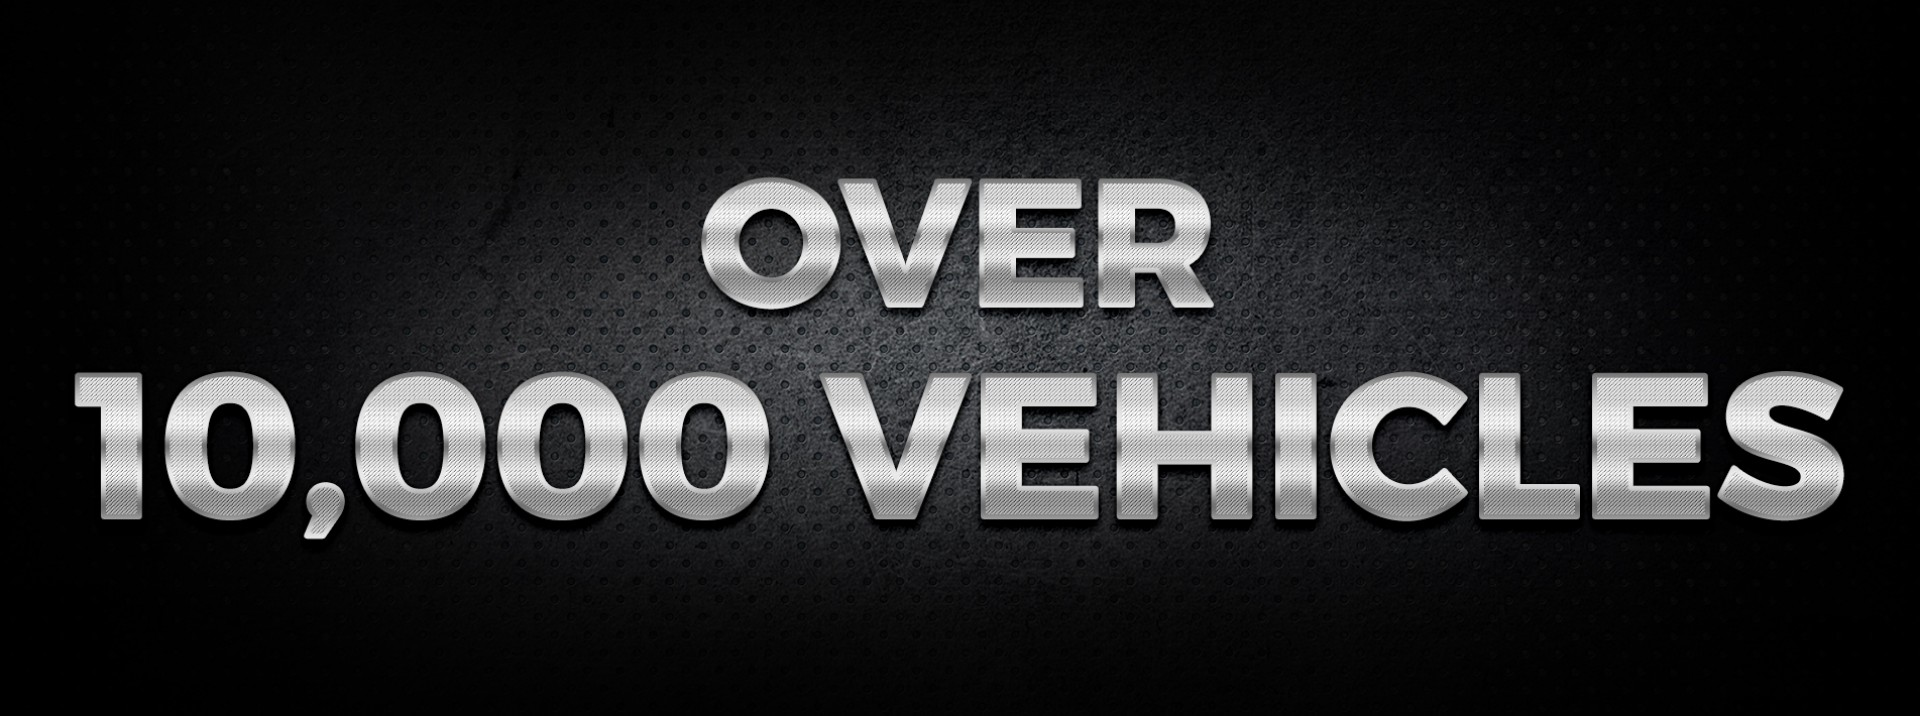 Over 10,000 Vehicles